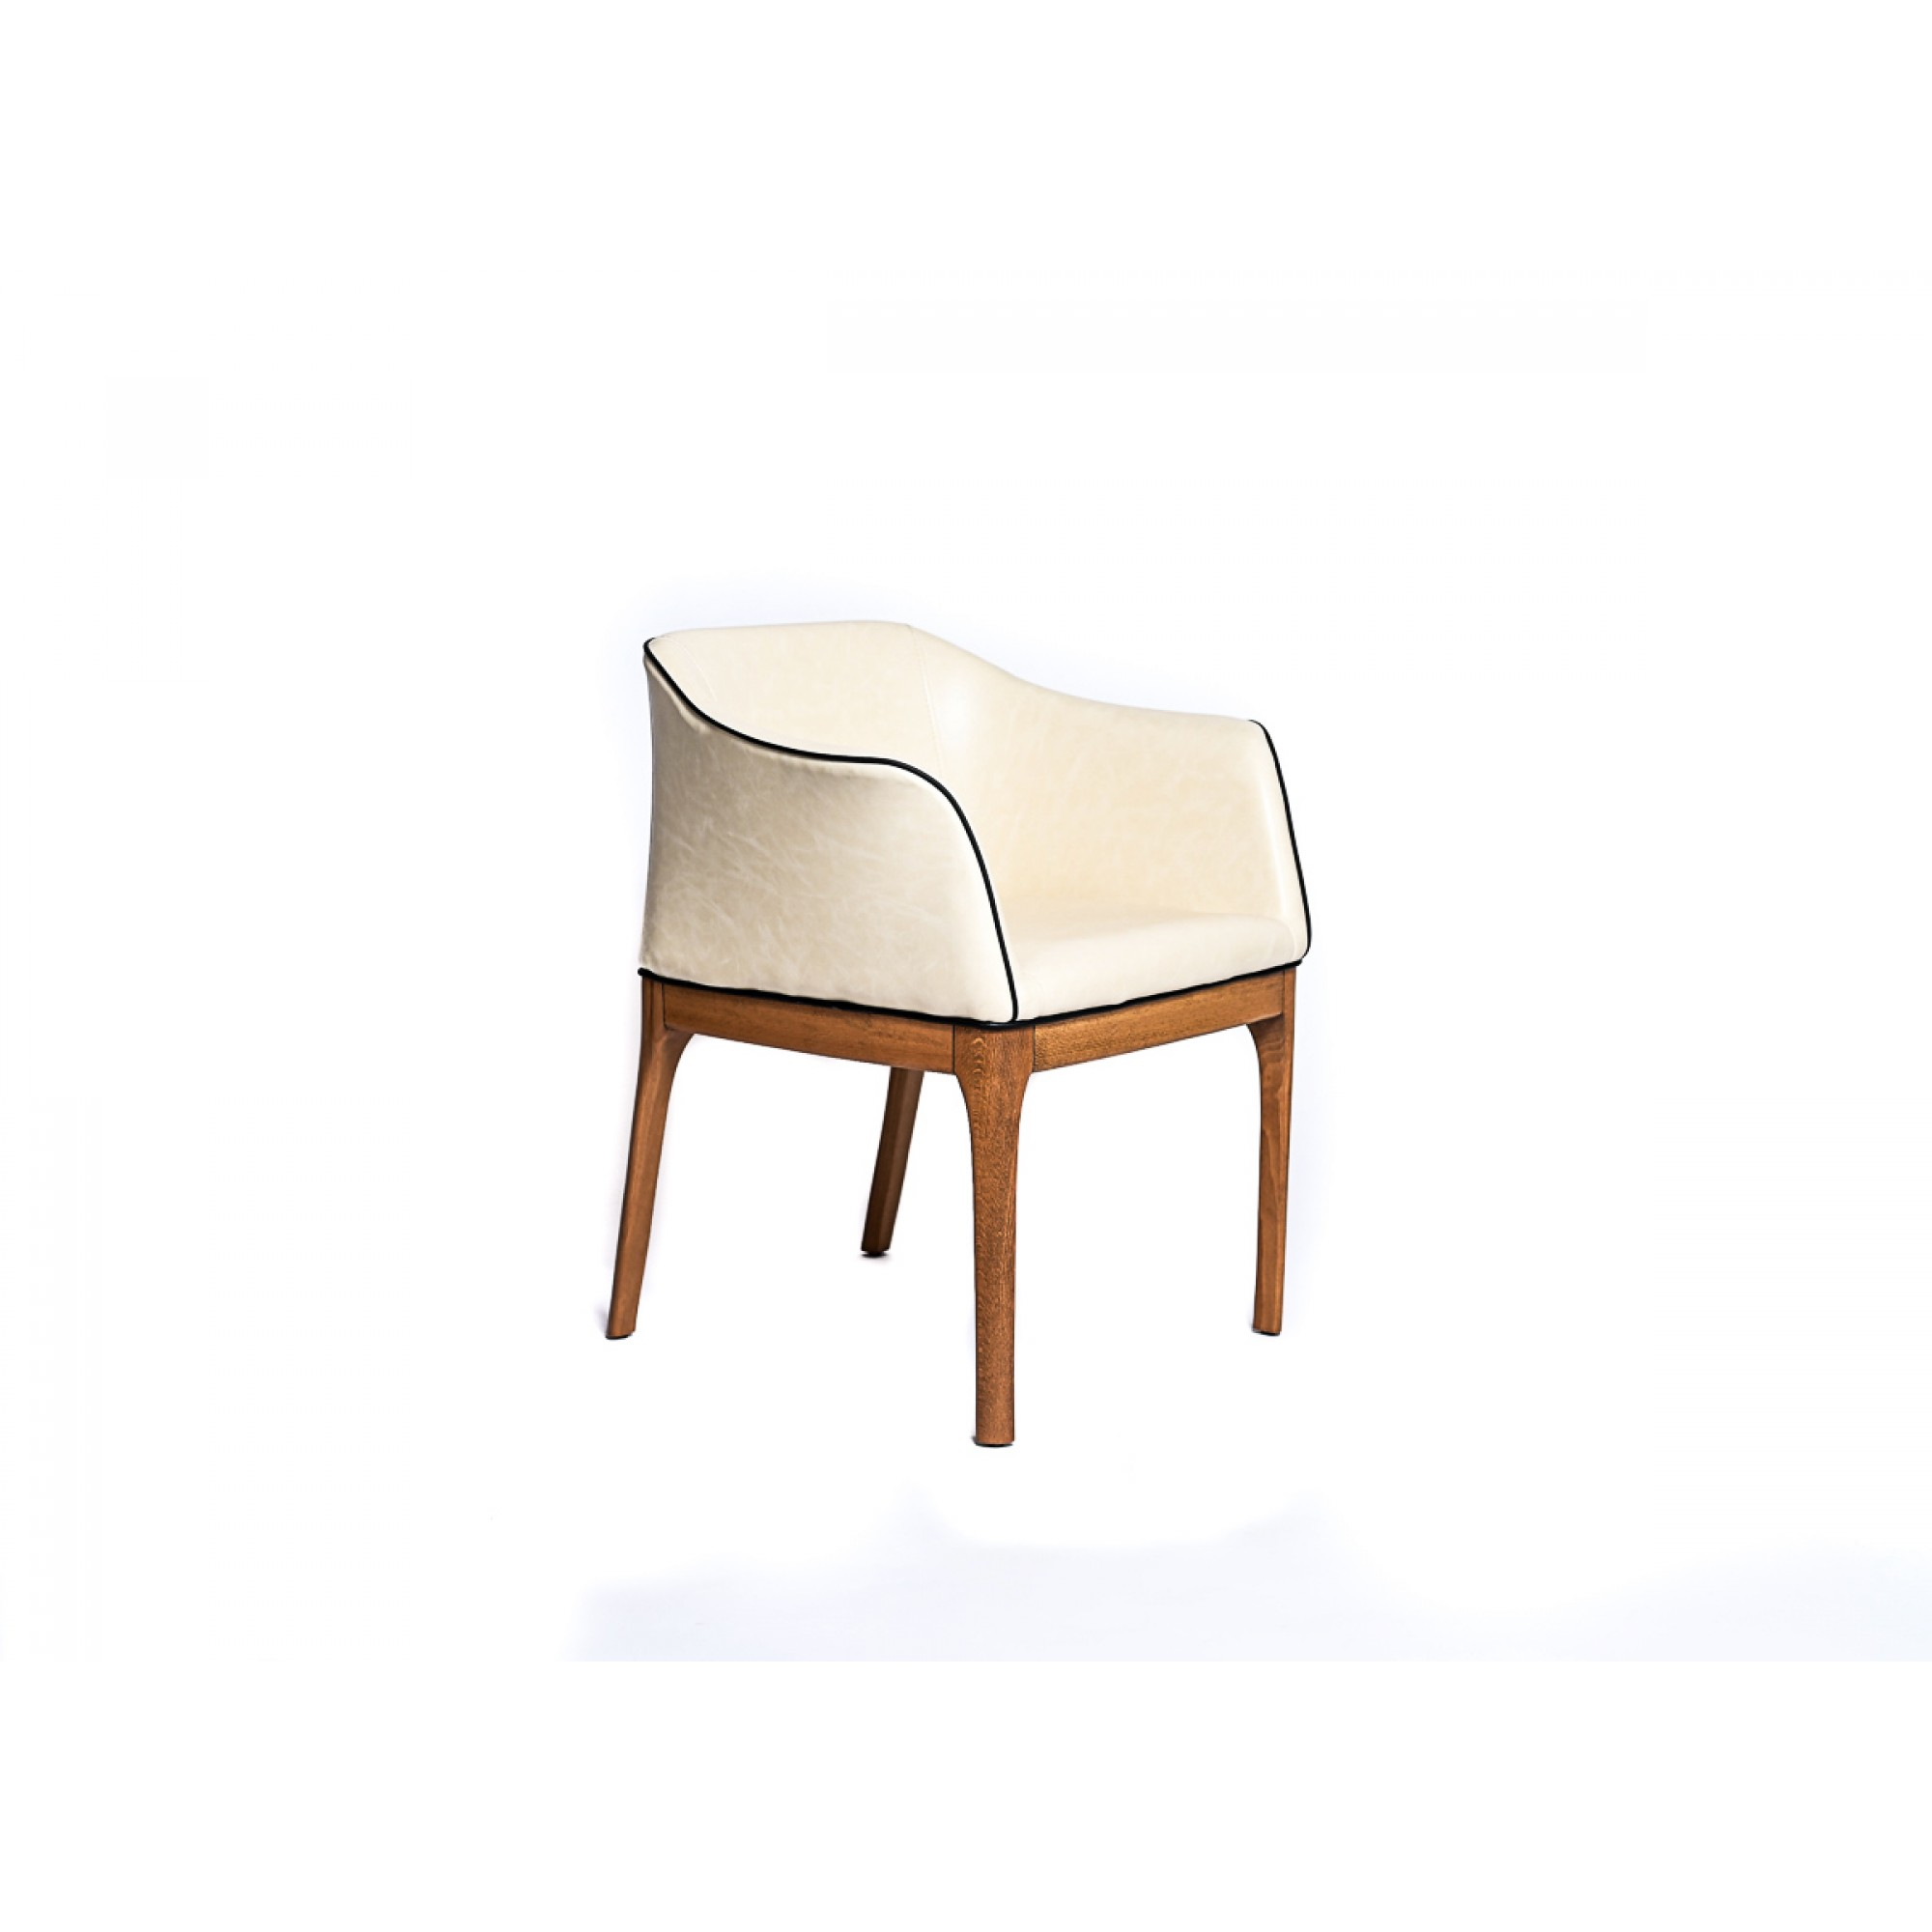 Chair with wooden legs, fully upholstered in ecological leather - UNO